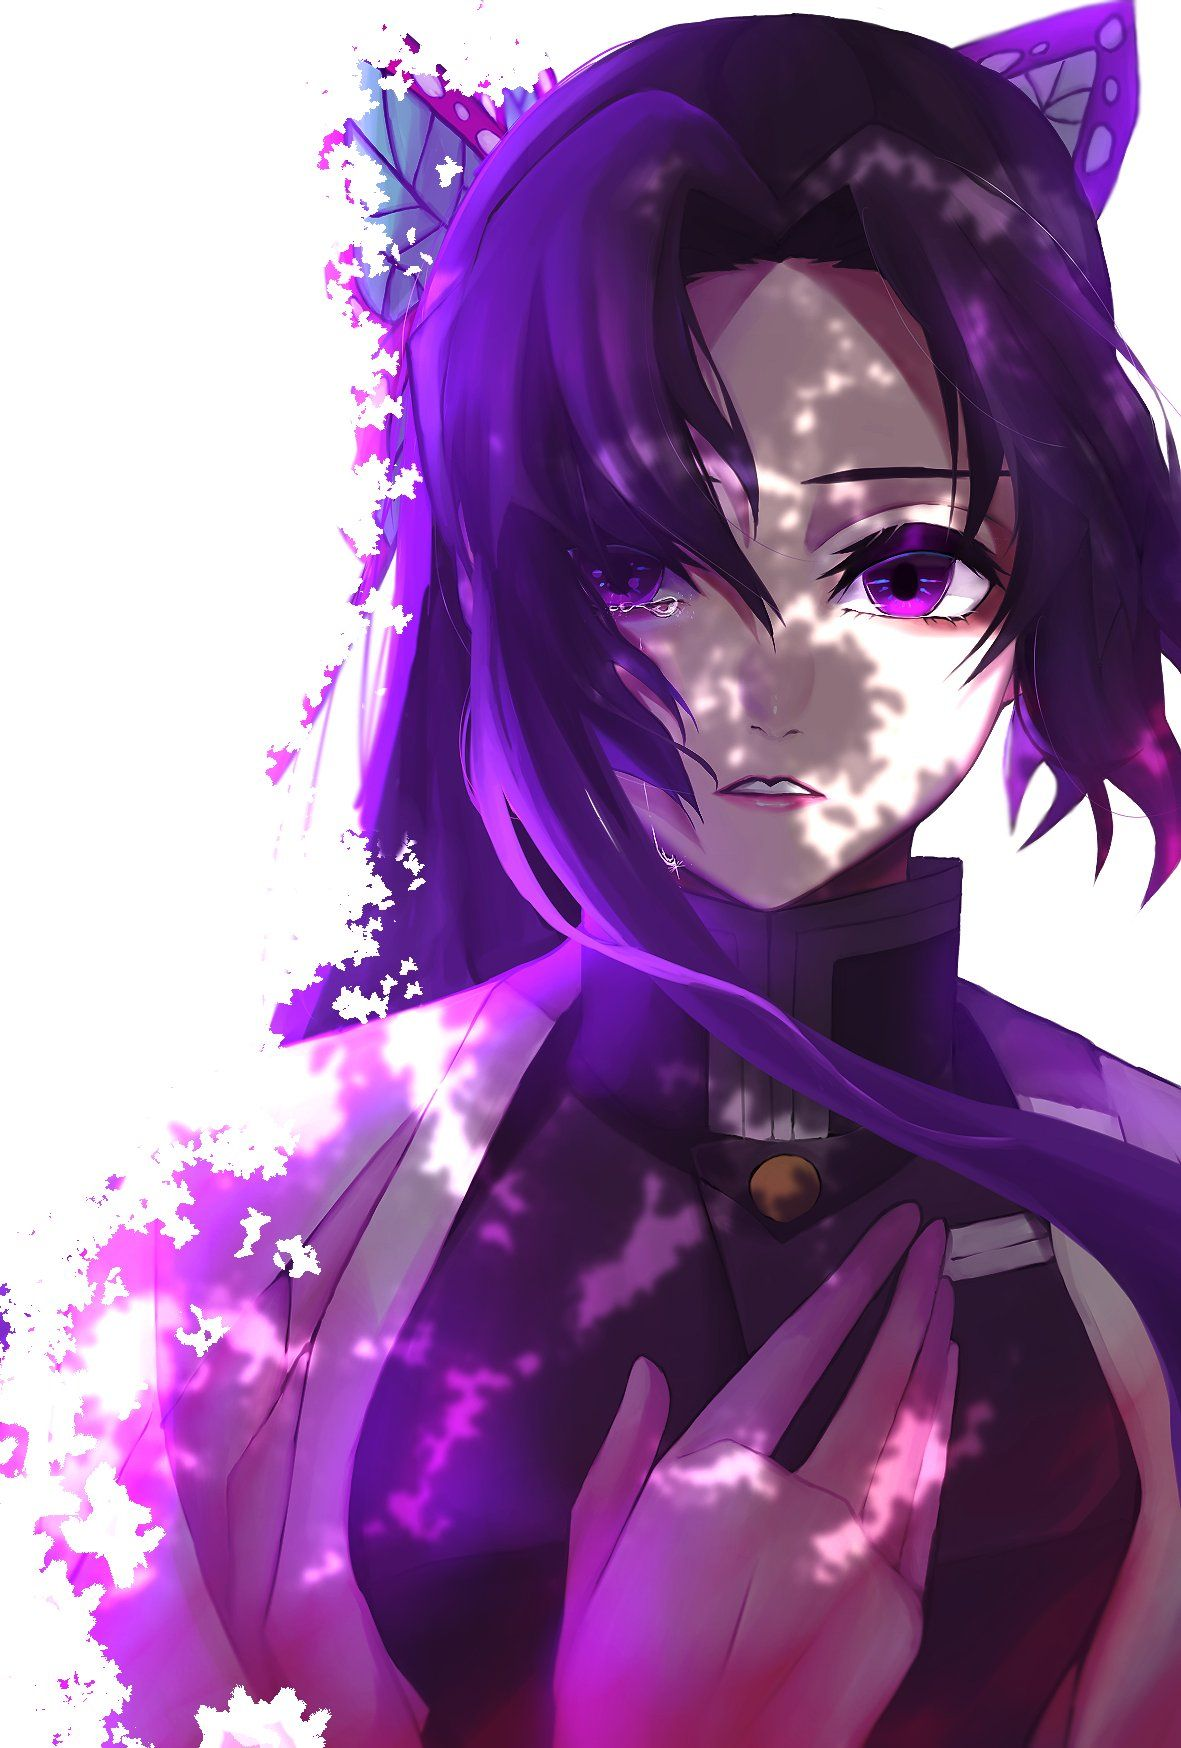 It is the closest that anyone has gotten to the top demon, and he predicts that tanjiro will be a valuable member. Demon Slayer Hashira Height - Manga